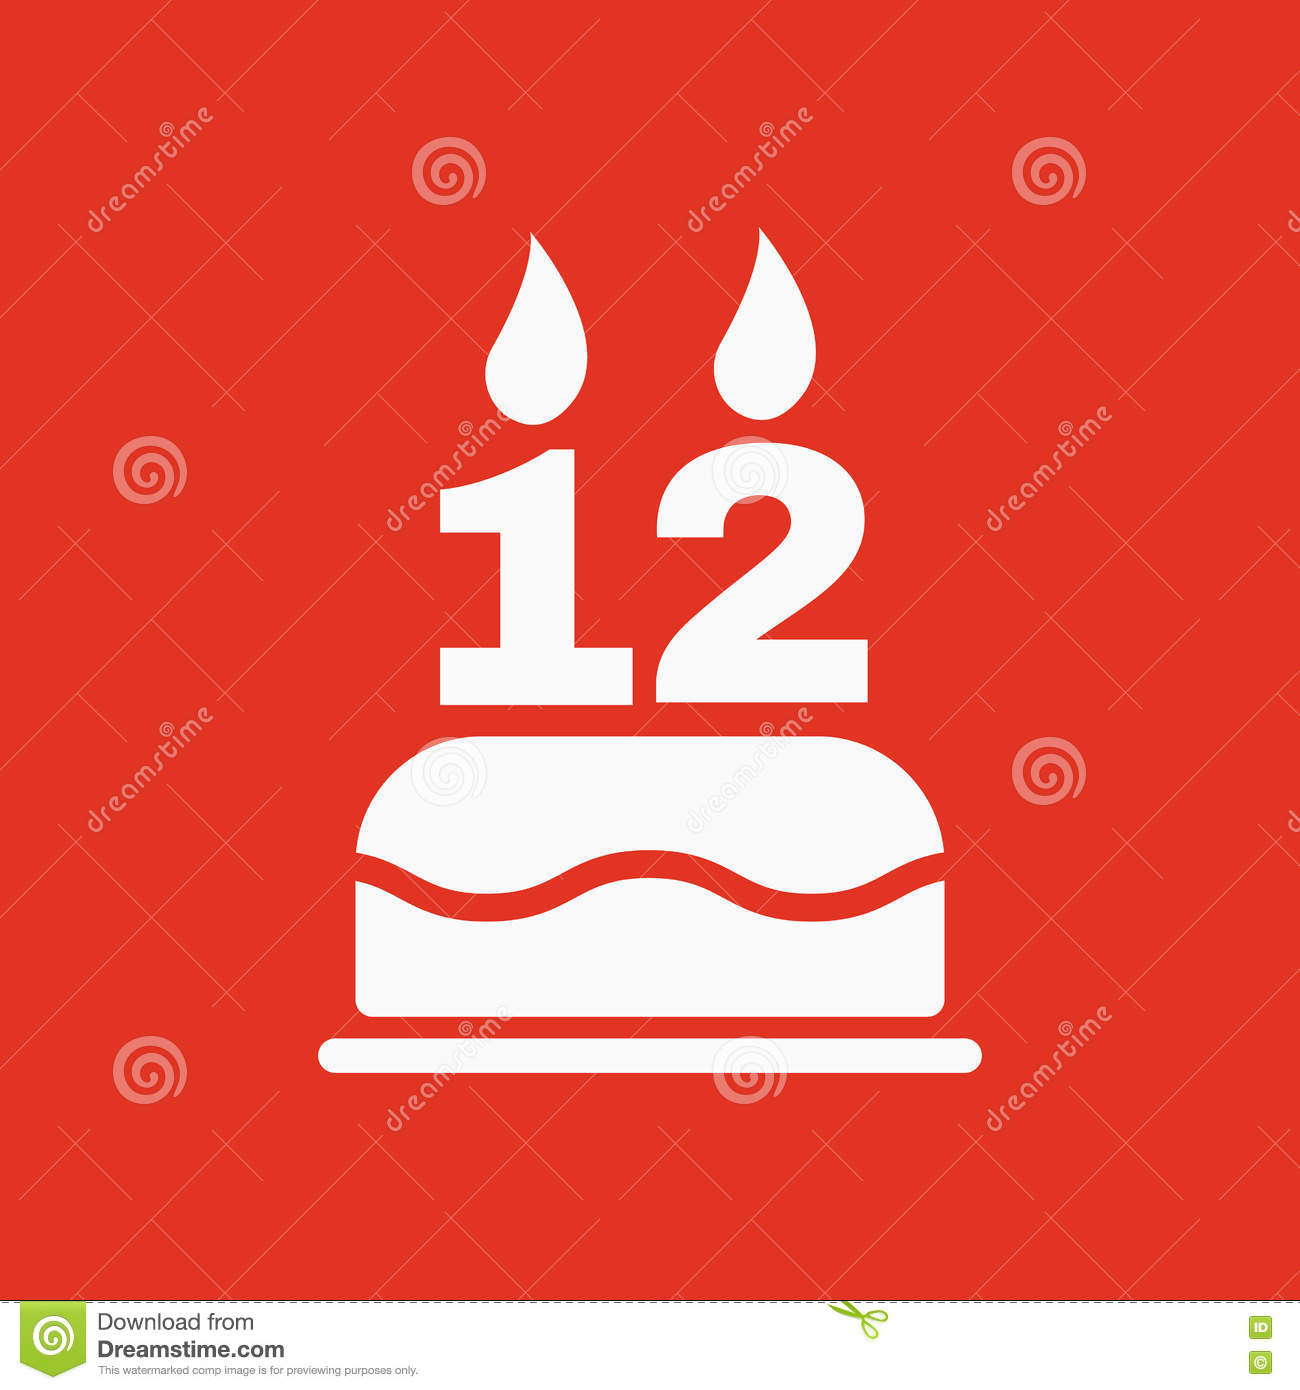 The Birthday Cake With Candles In Form Of Number 12 Icon Symbol